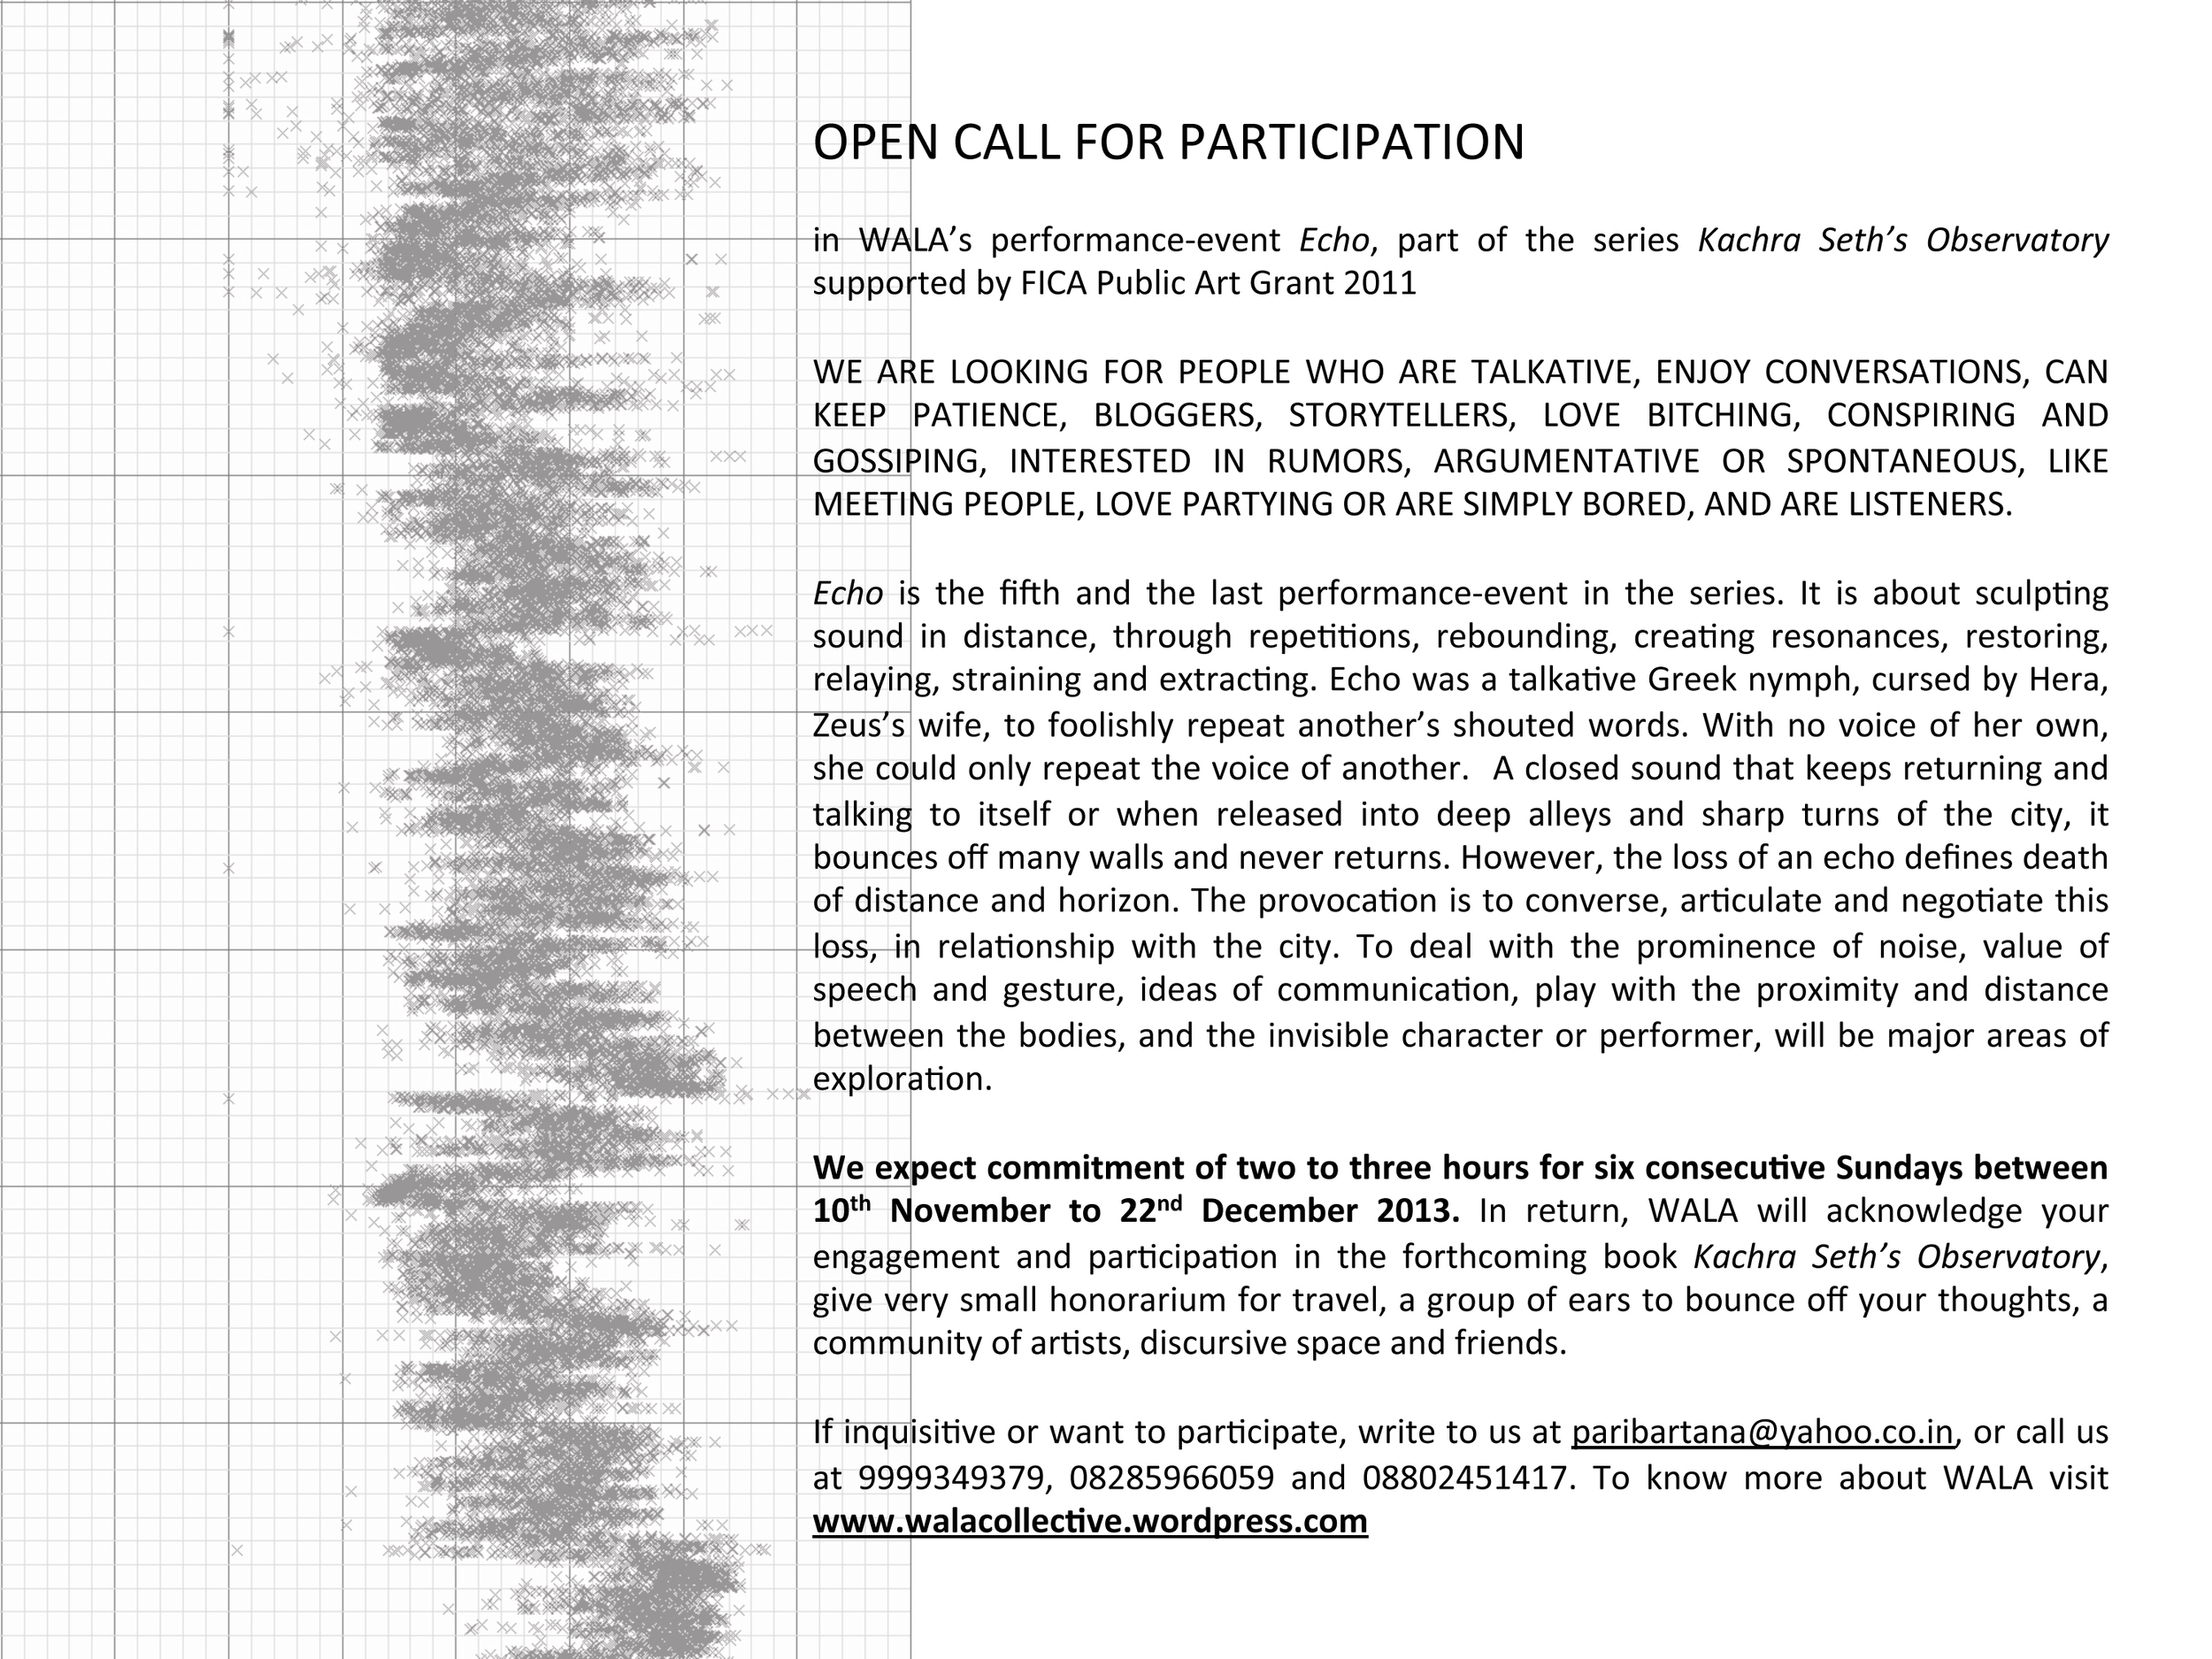 OPEN CALL FOR PARTICIPATION IN PERFORMANCE #5 ENTITLED ECHO